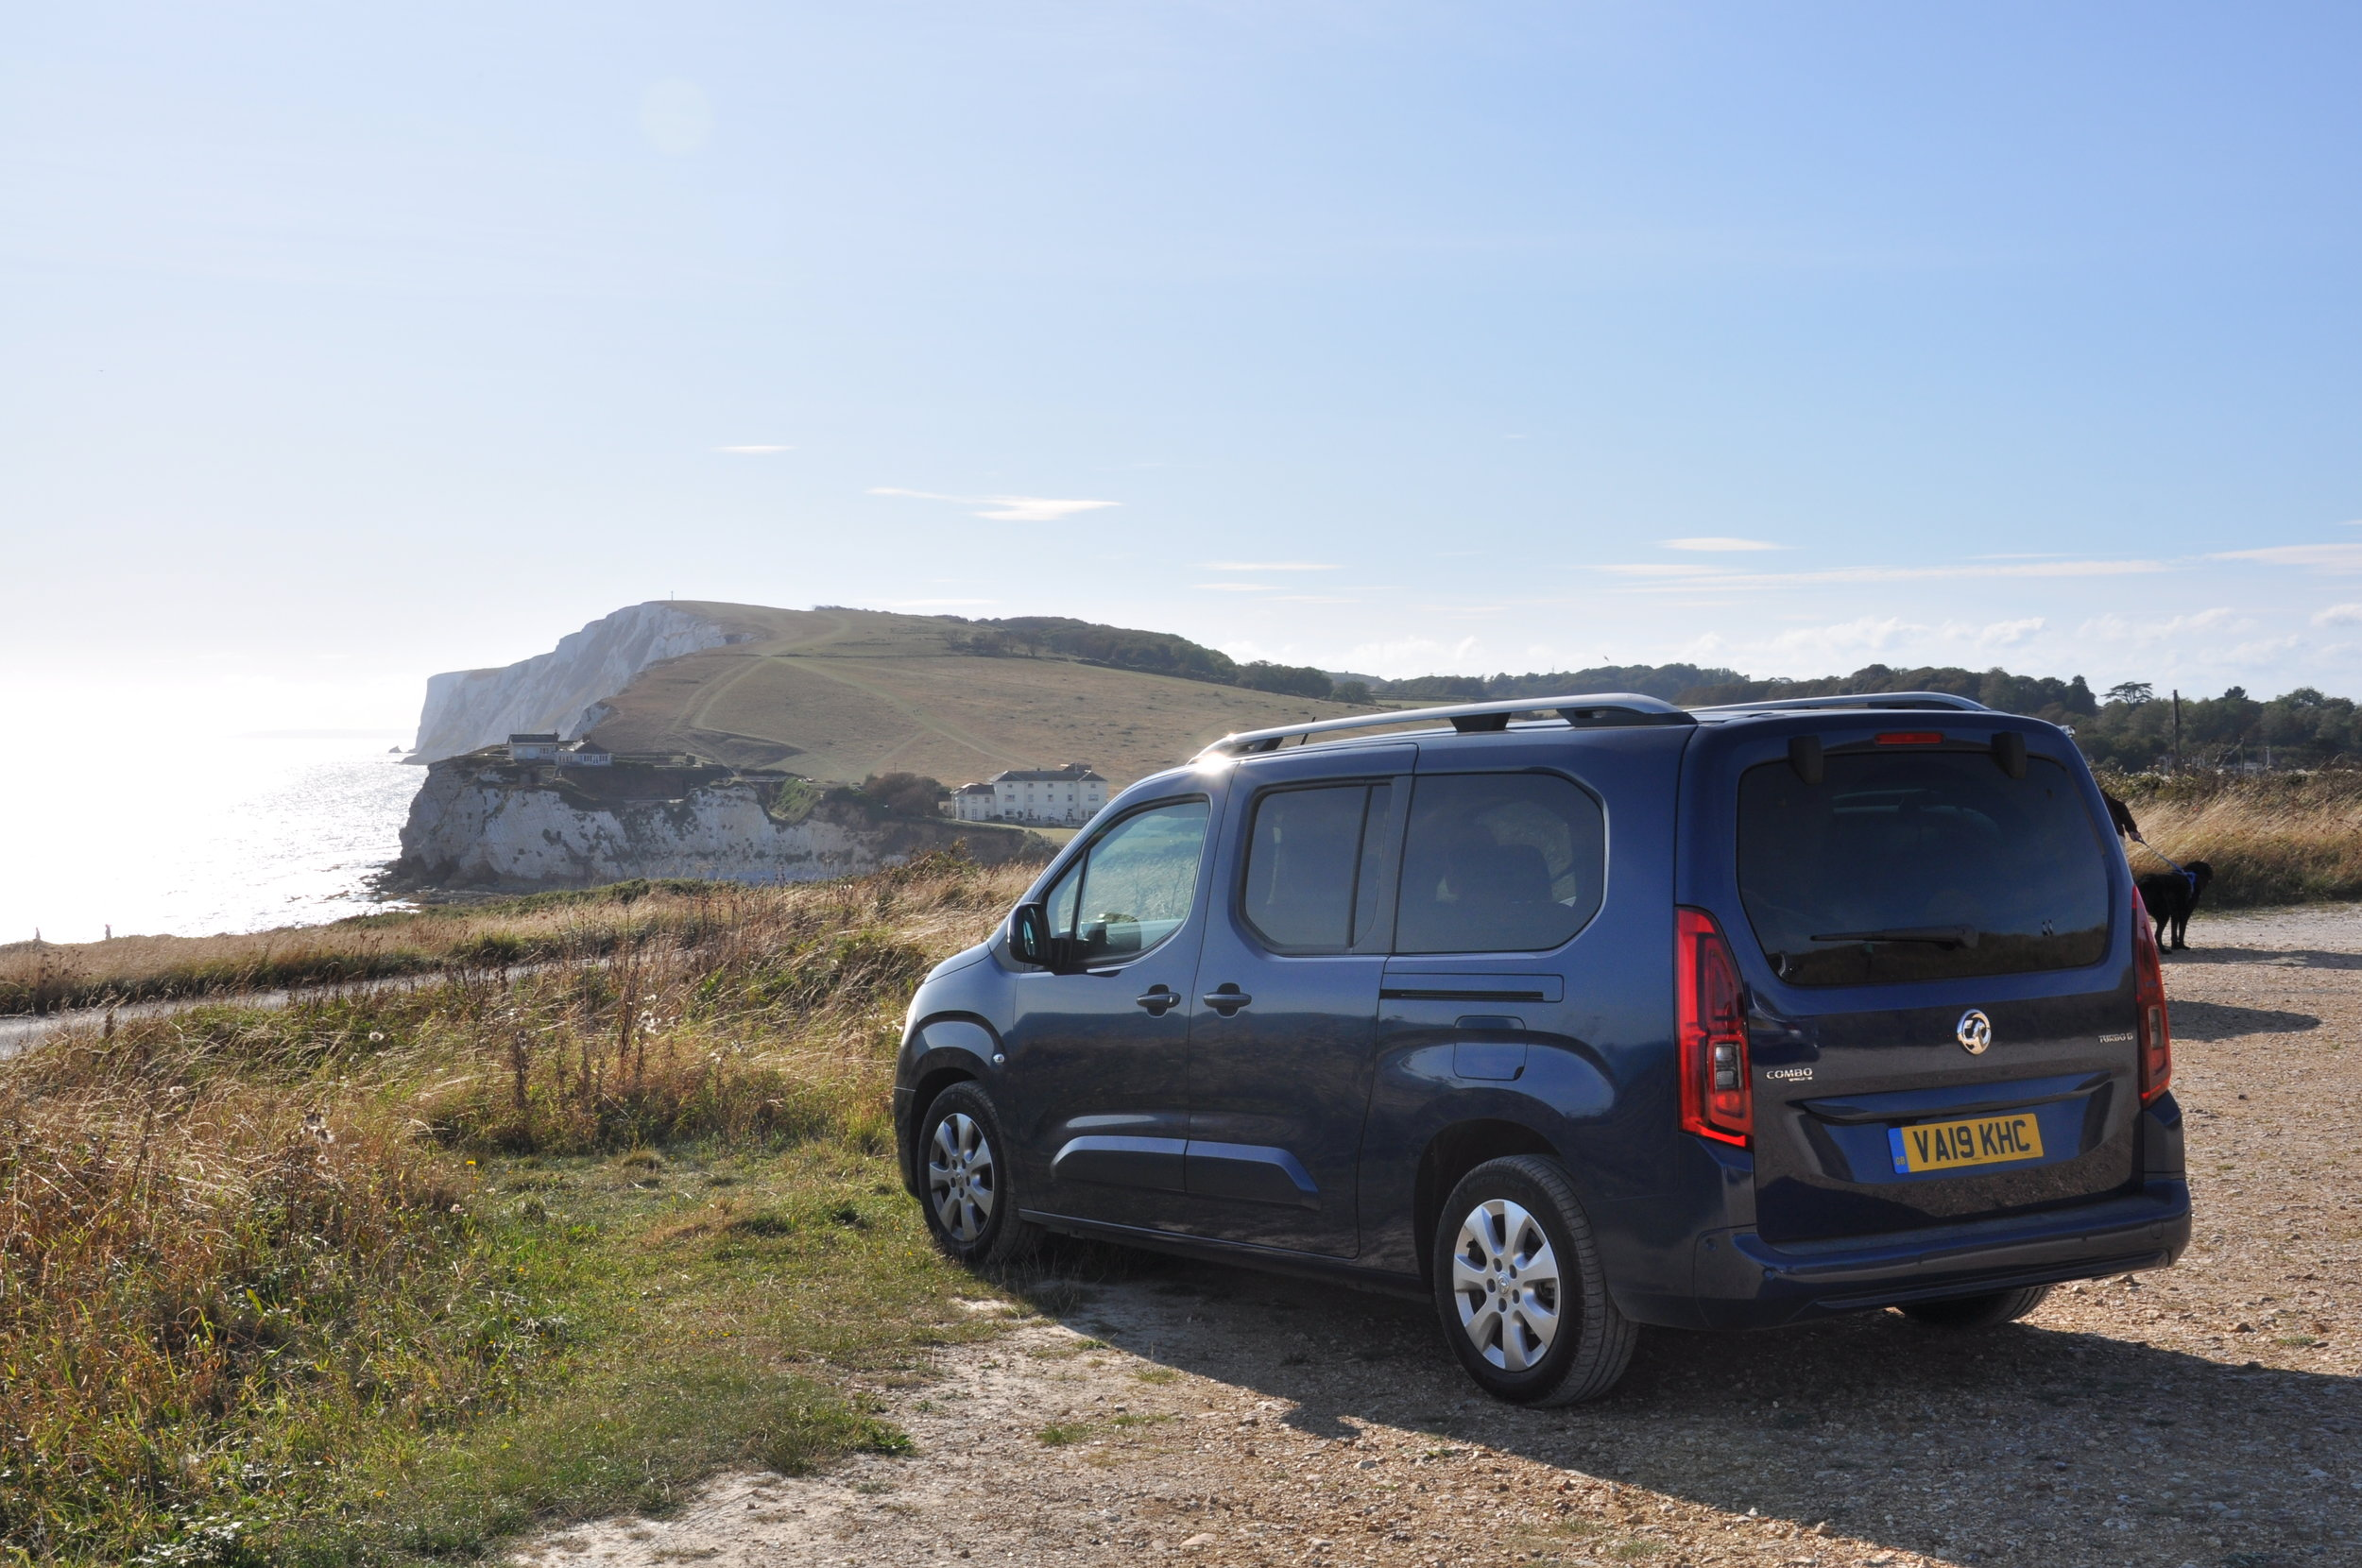 Our van admiring the view in west Wight.